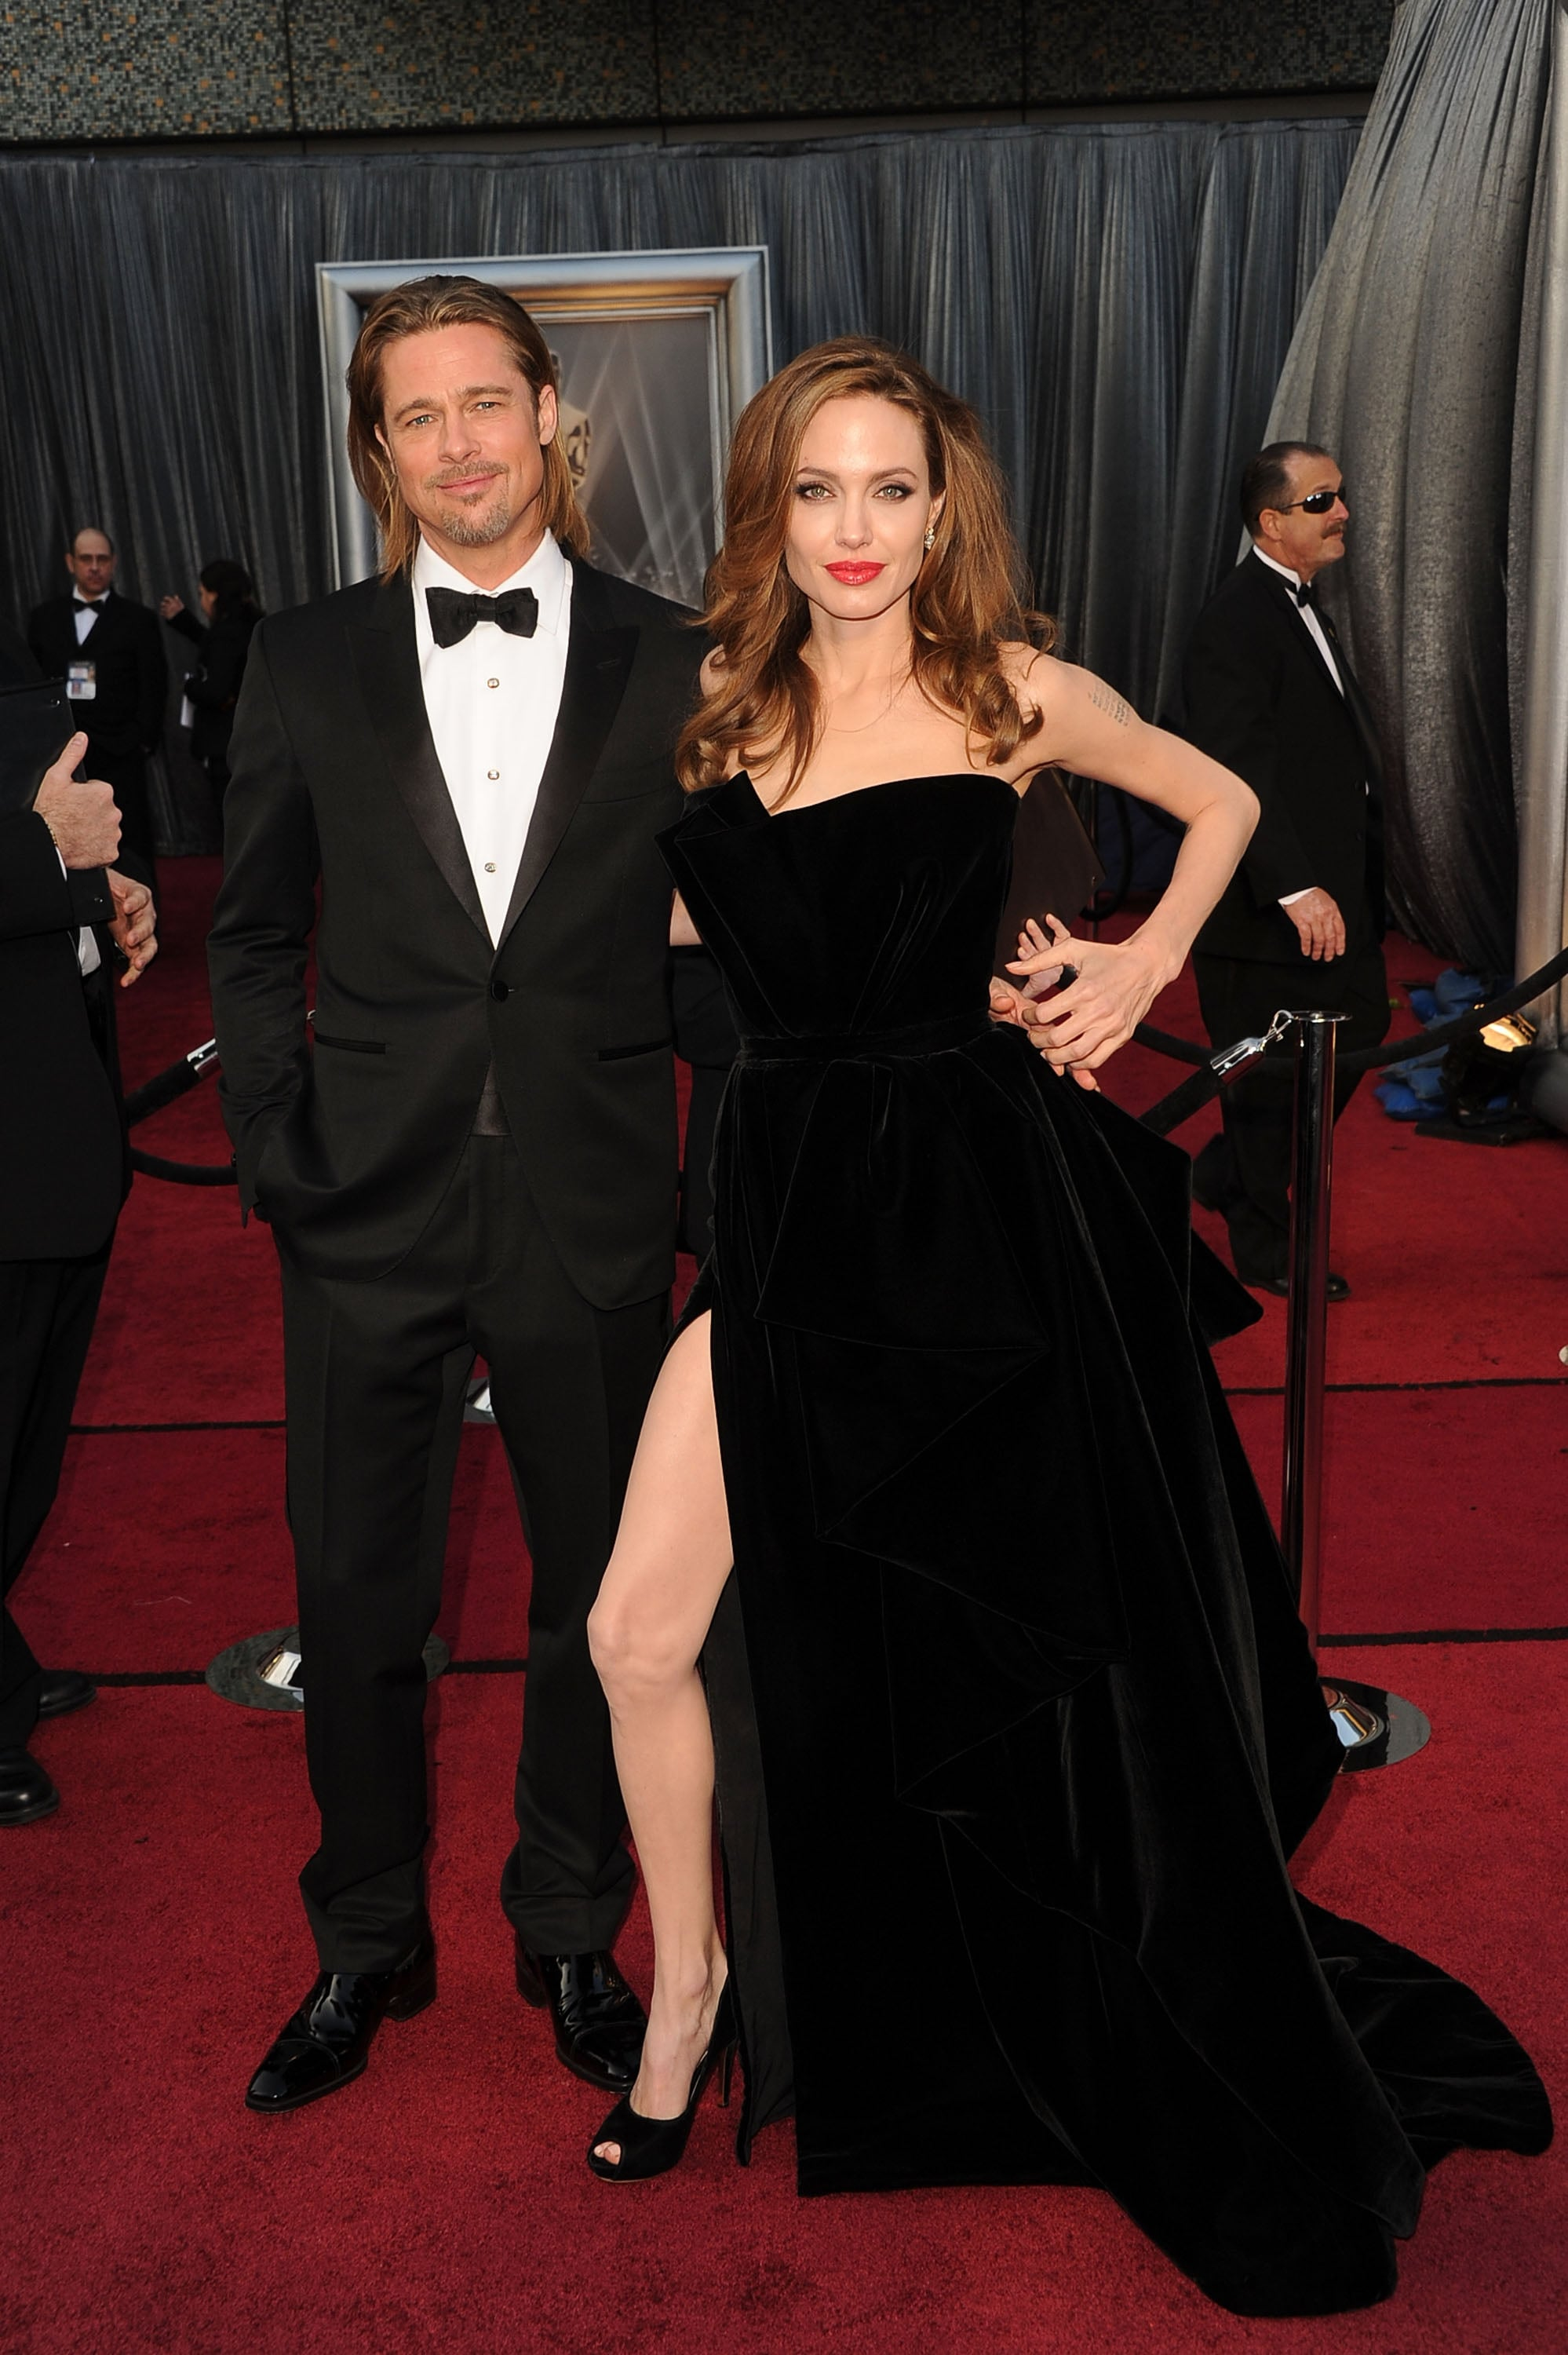 Angelina Jolie showed off her now-infamous leg on the red carpet with Brad Pitt at the 2012 Oscars.